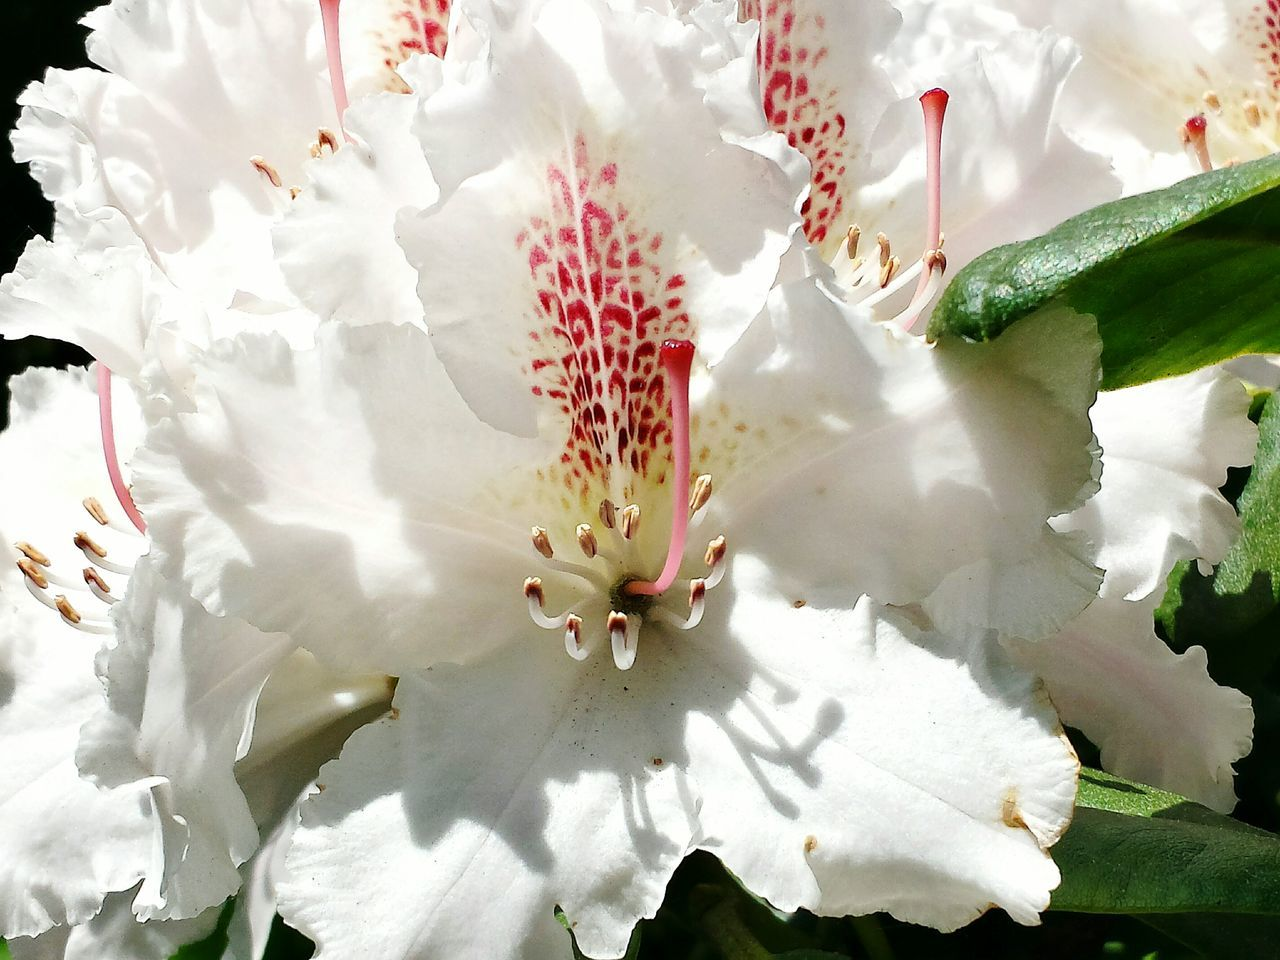 In Voller Blüte Rhododendron Rhododendronblűte Rhododendron Blossoms Close Up Close-up Macro Studies Of Botany Macro Beauty Blossoming Magic Blütenrausch Light And Shadow Mirroring On A Blossom Sunkissed Blütenzart Blossoming Beauty Blütenschönheit Blütenzauber Nature's Diversities Blűtenstempel Macro Blossoms Showcase: May Ladyphotographerofthemonth Beautiful Nature Full In Blossom